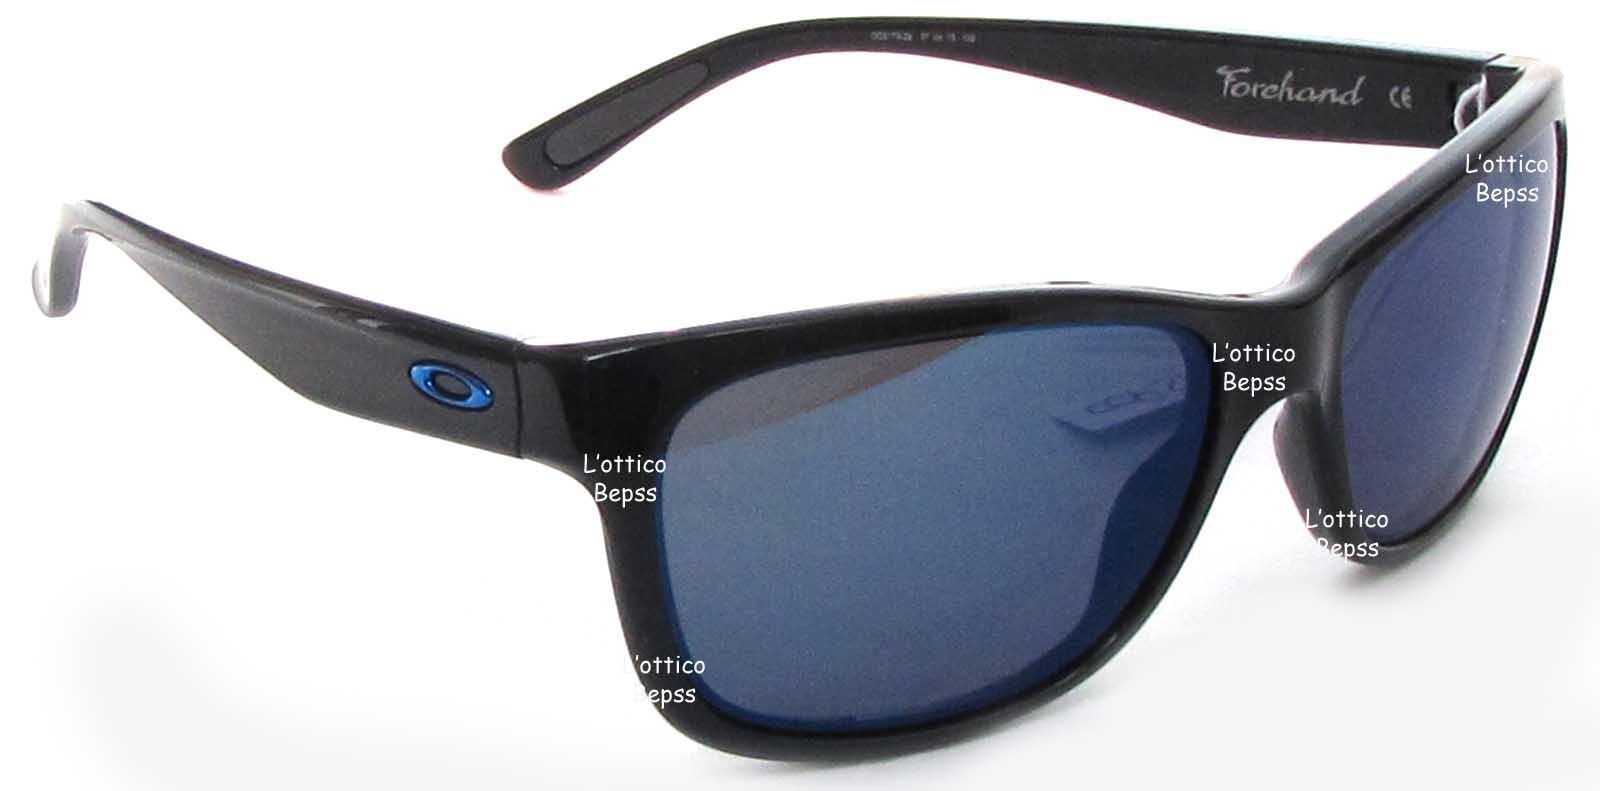 a1154bddaea29 Details about SUNGLASSES OAKLEY mod. FORCHAND 9179-29 SHINY BLACK Lens ICE  IRIDIUM